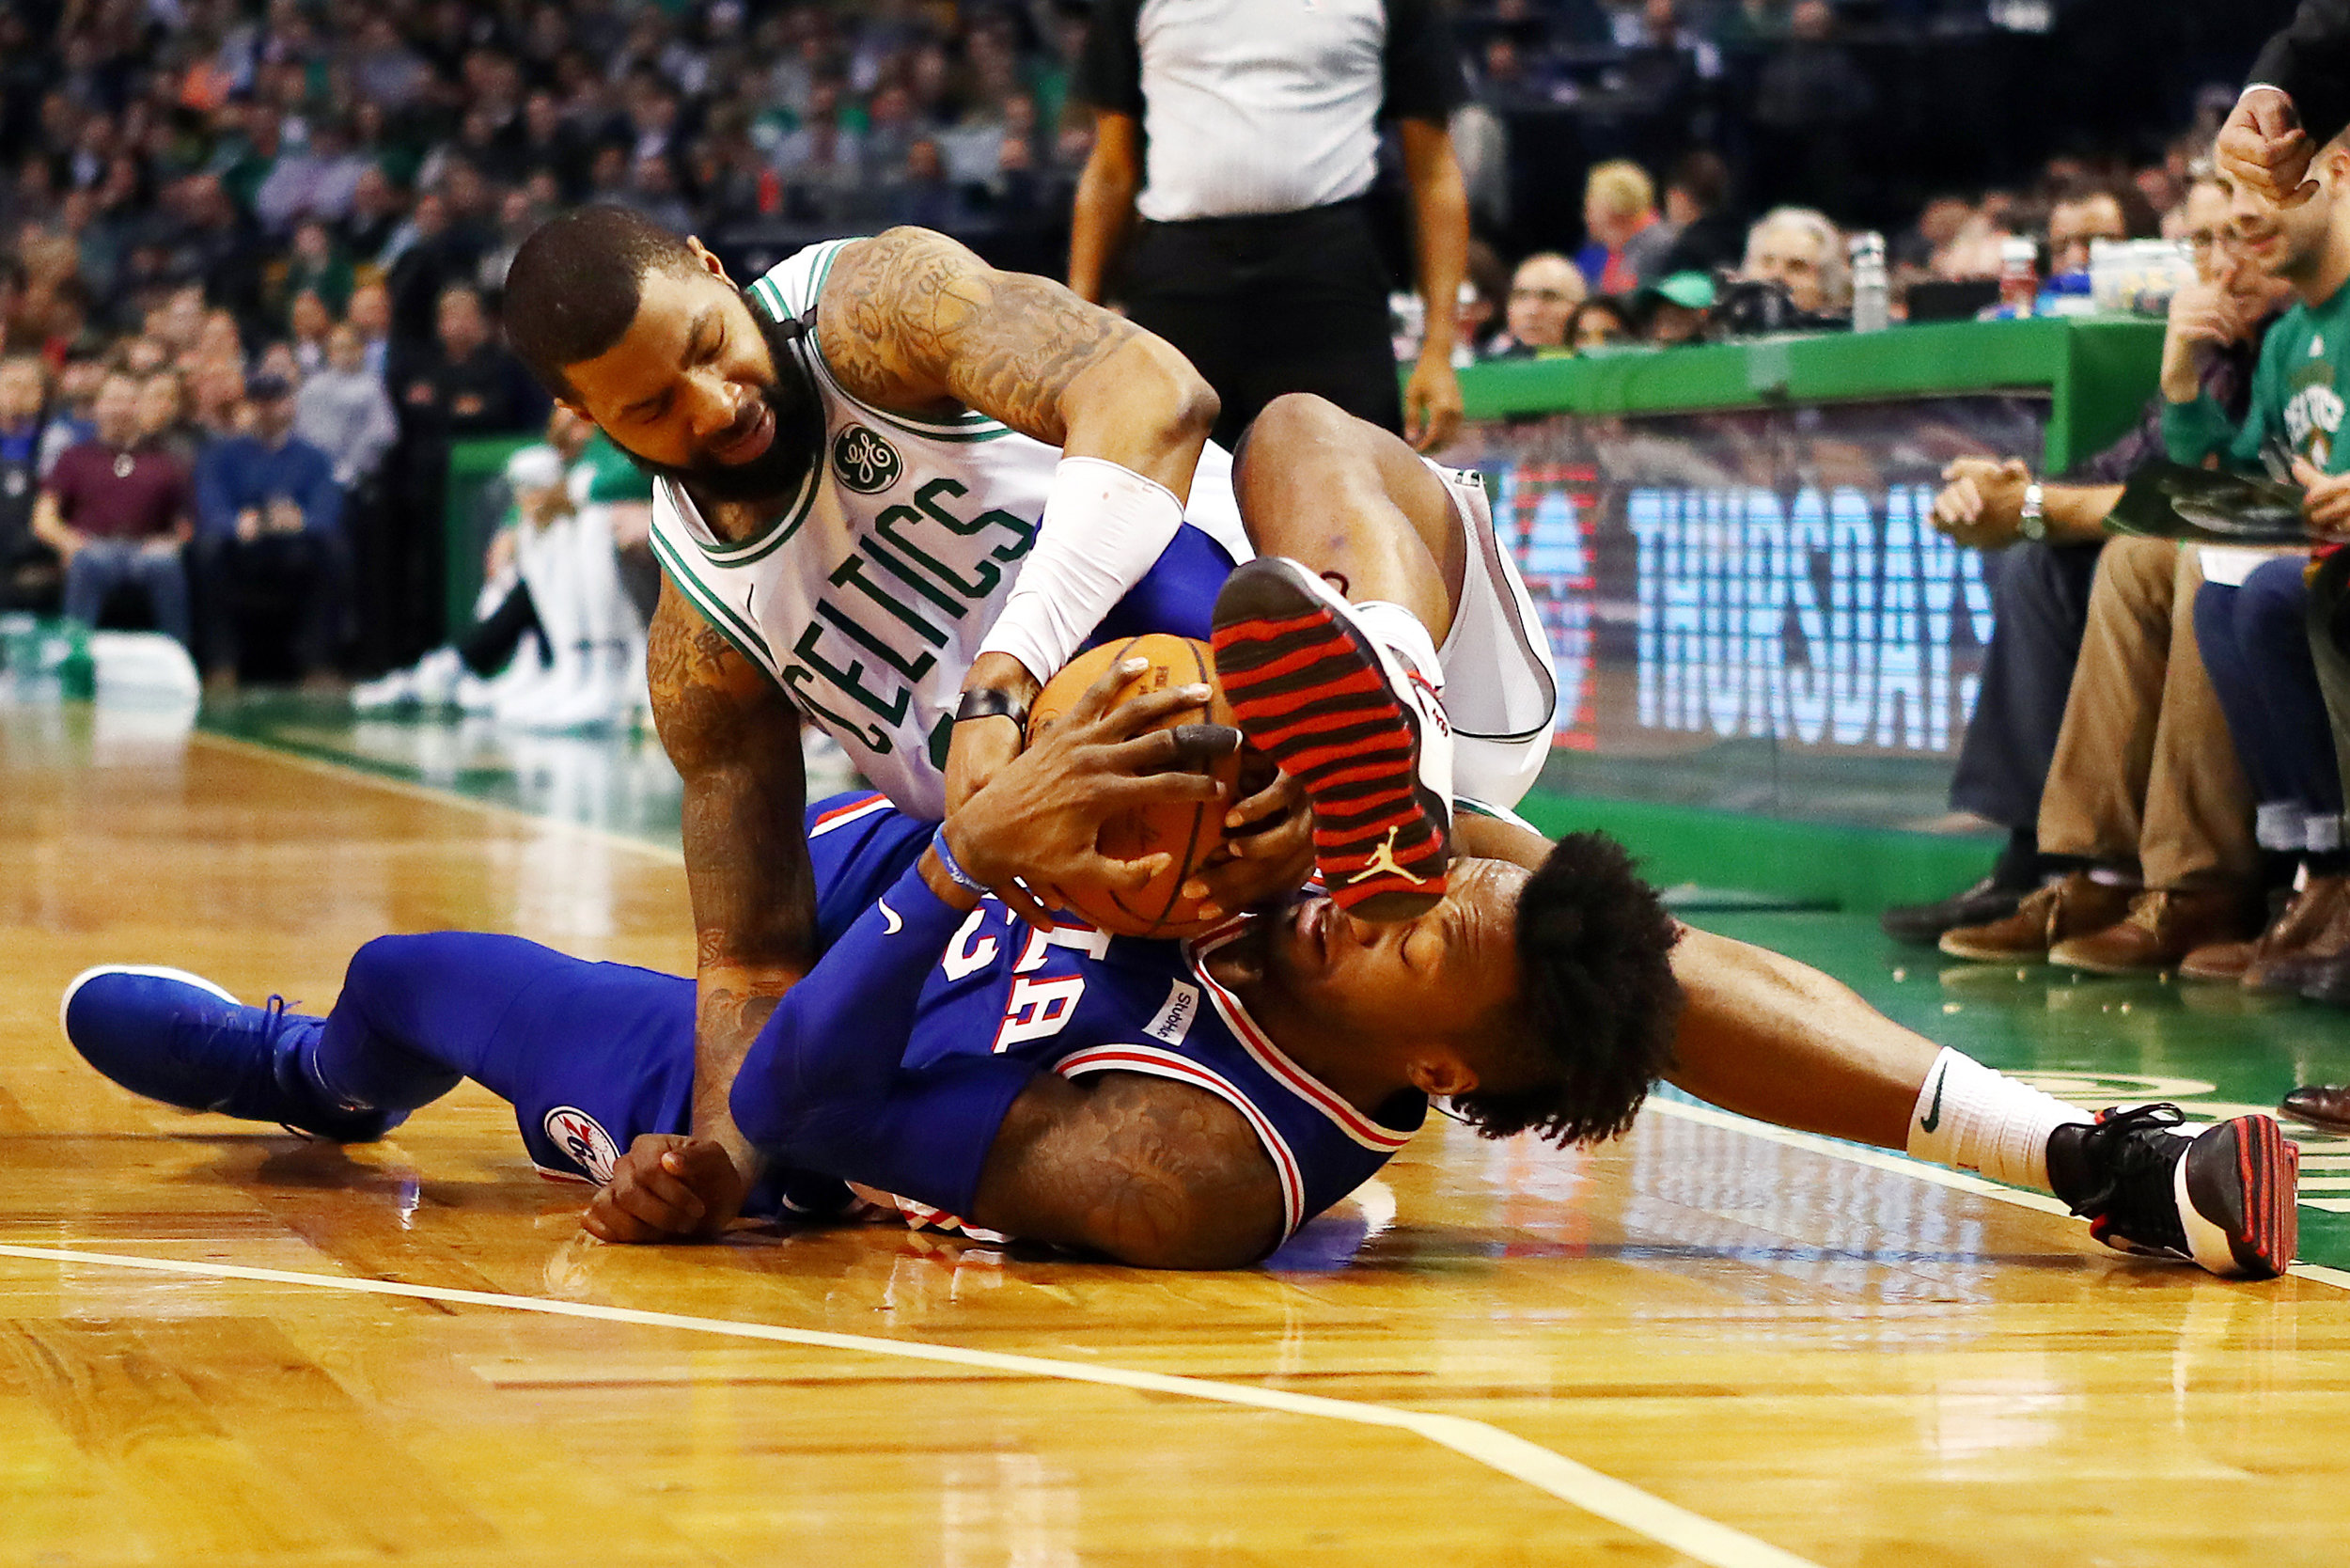 BOSTON, MA - JANUARY 18: Robert Covington #33 of the Philadelphia 76ers and Marcus Morris #13 of the Boston Celtics battle for a loose ball during the first half of their game at TD Garden on January 18, 2018 in Boston, Massachusetts. (Photo by Tim Bradbury/Getty Images)